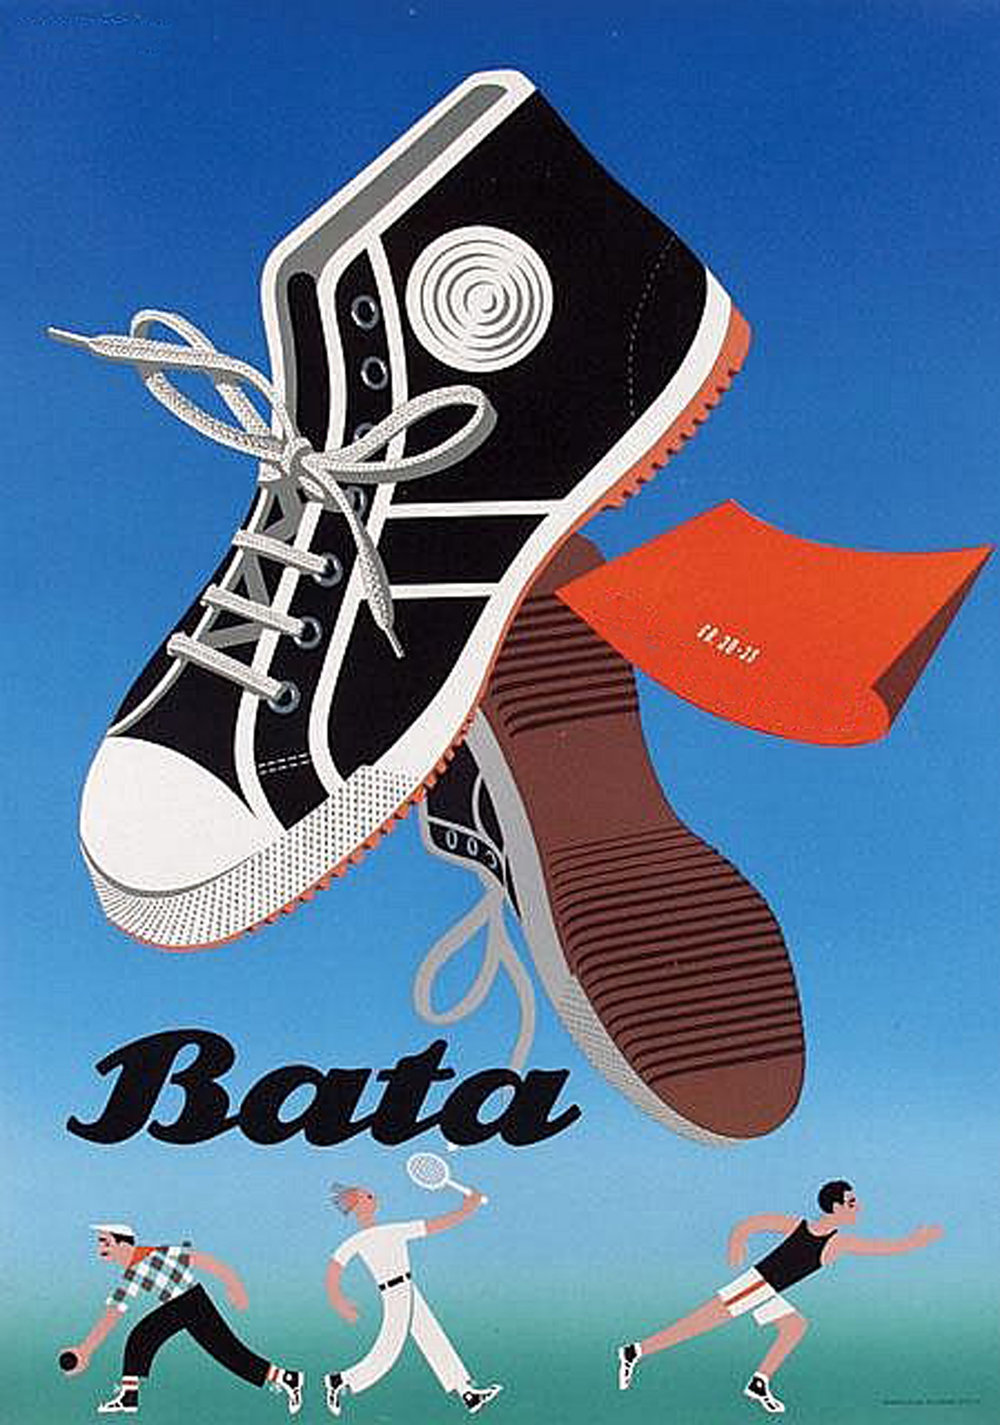 Bata's famous posters from the 1940's.